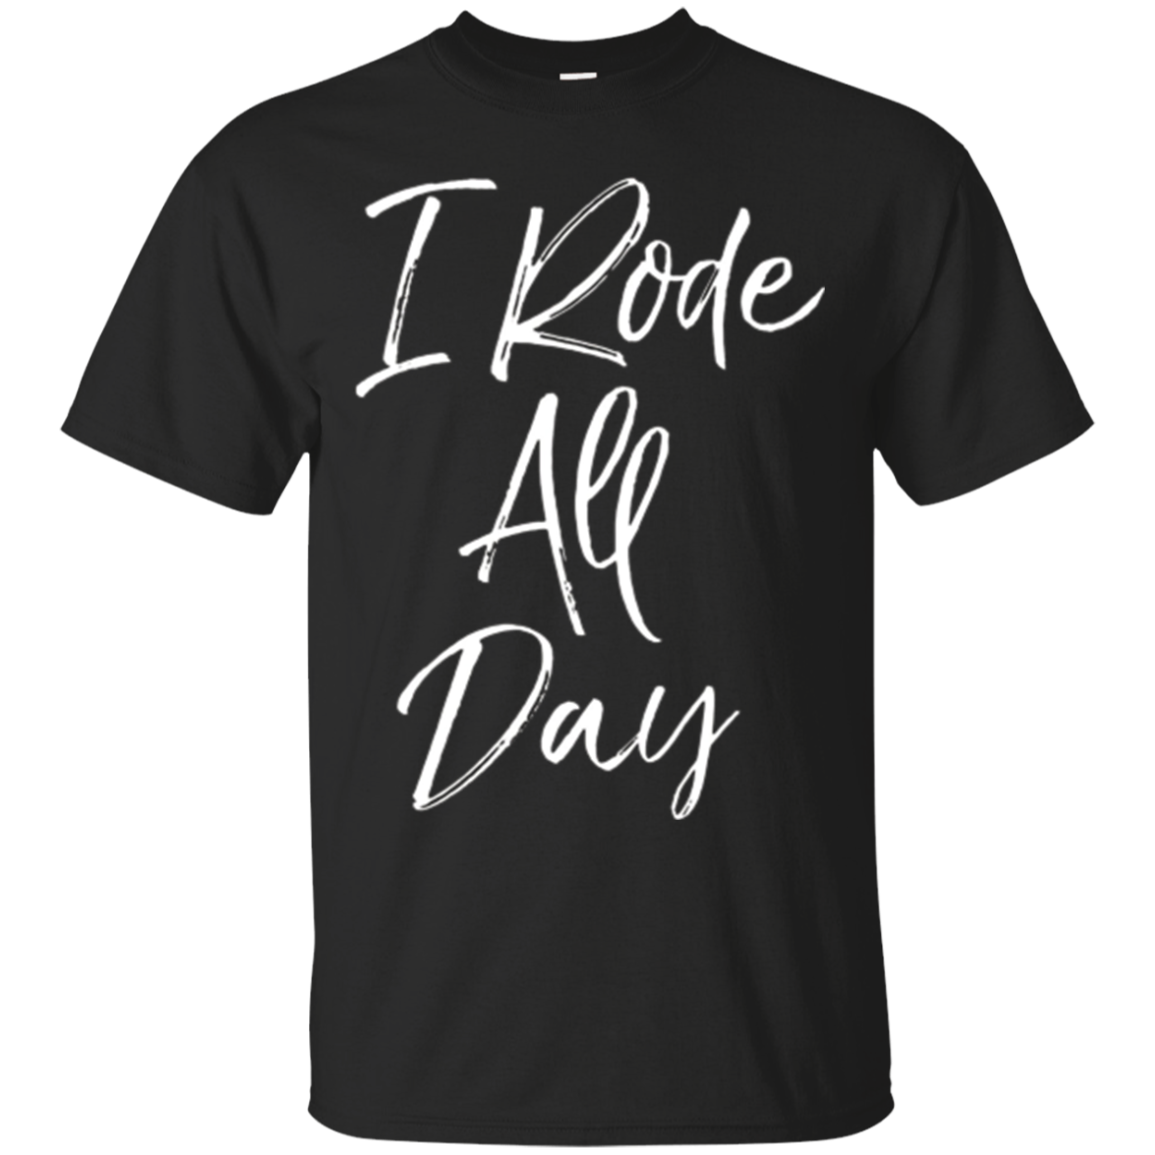 I Rode All Day Shirt Fun Cute Horse Equestrian Lover Tee